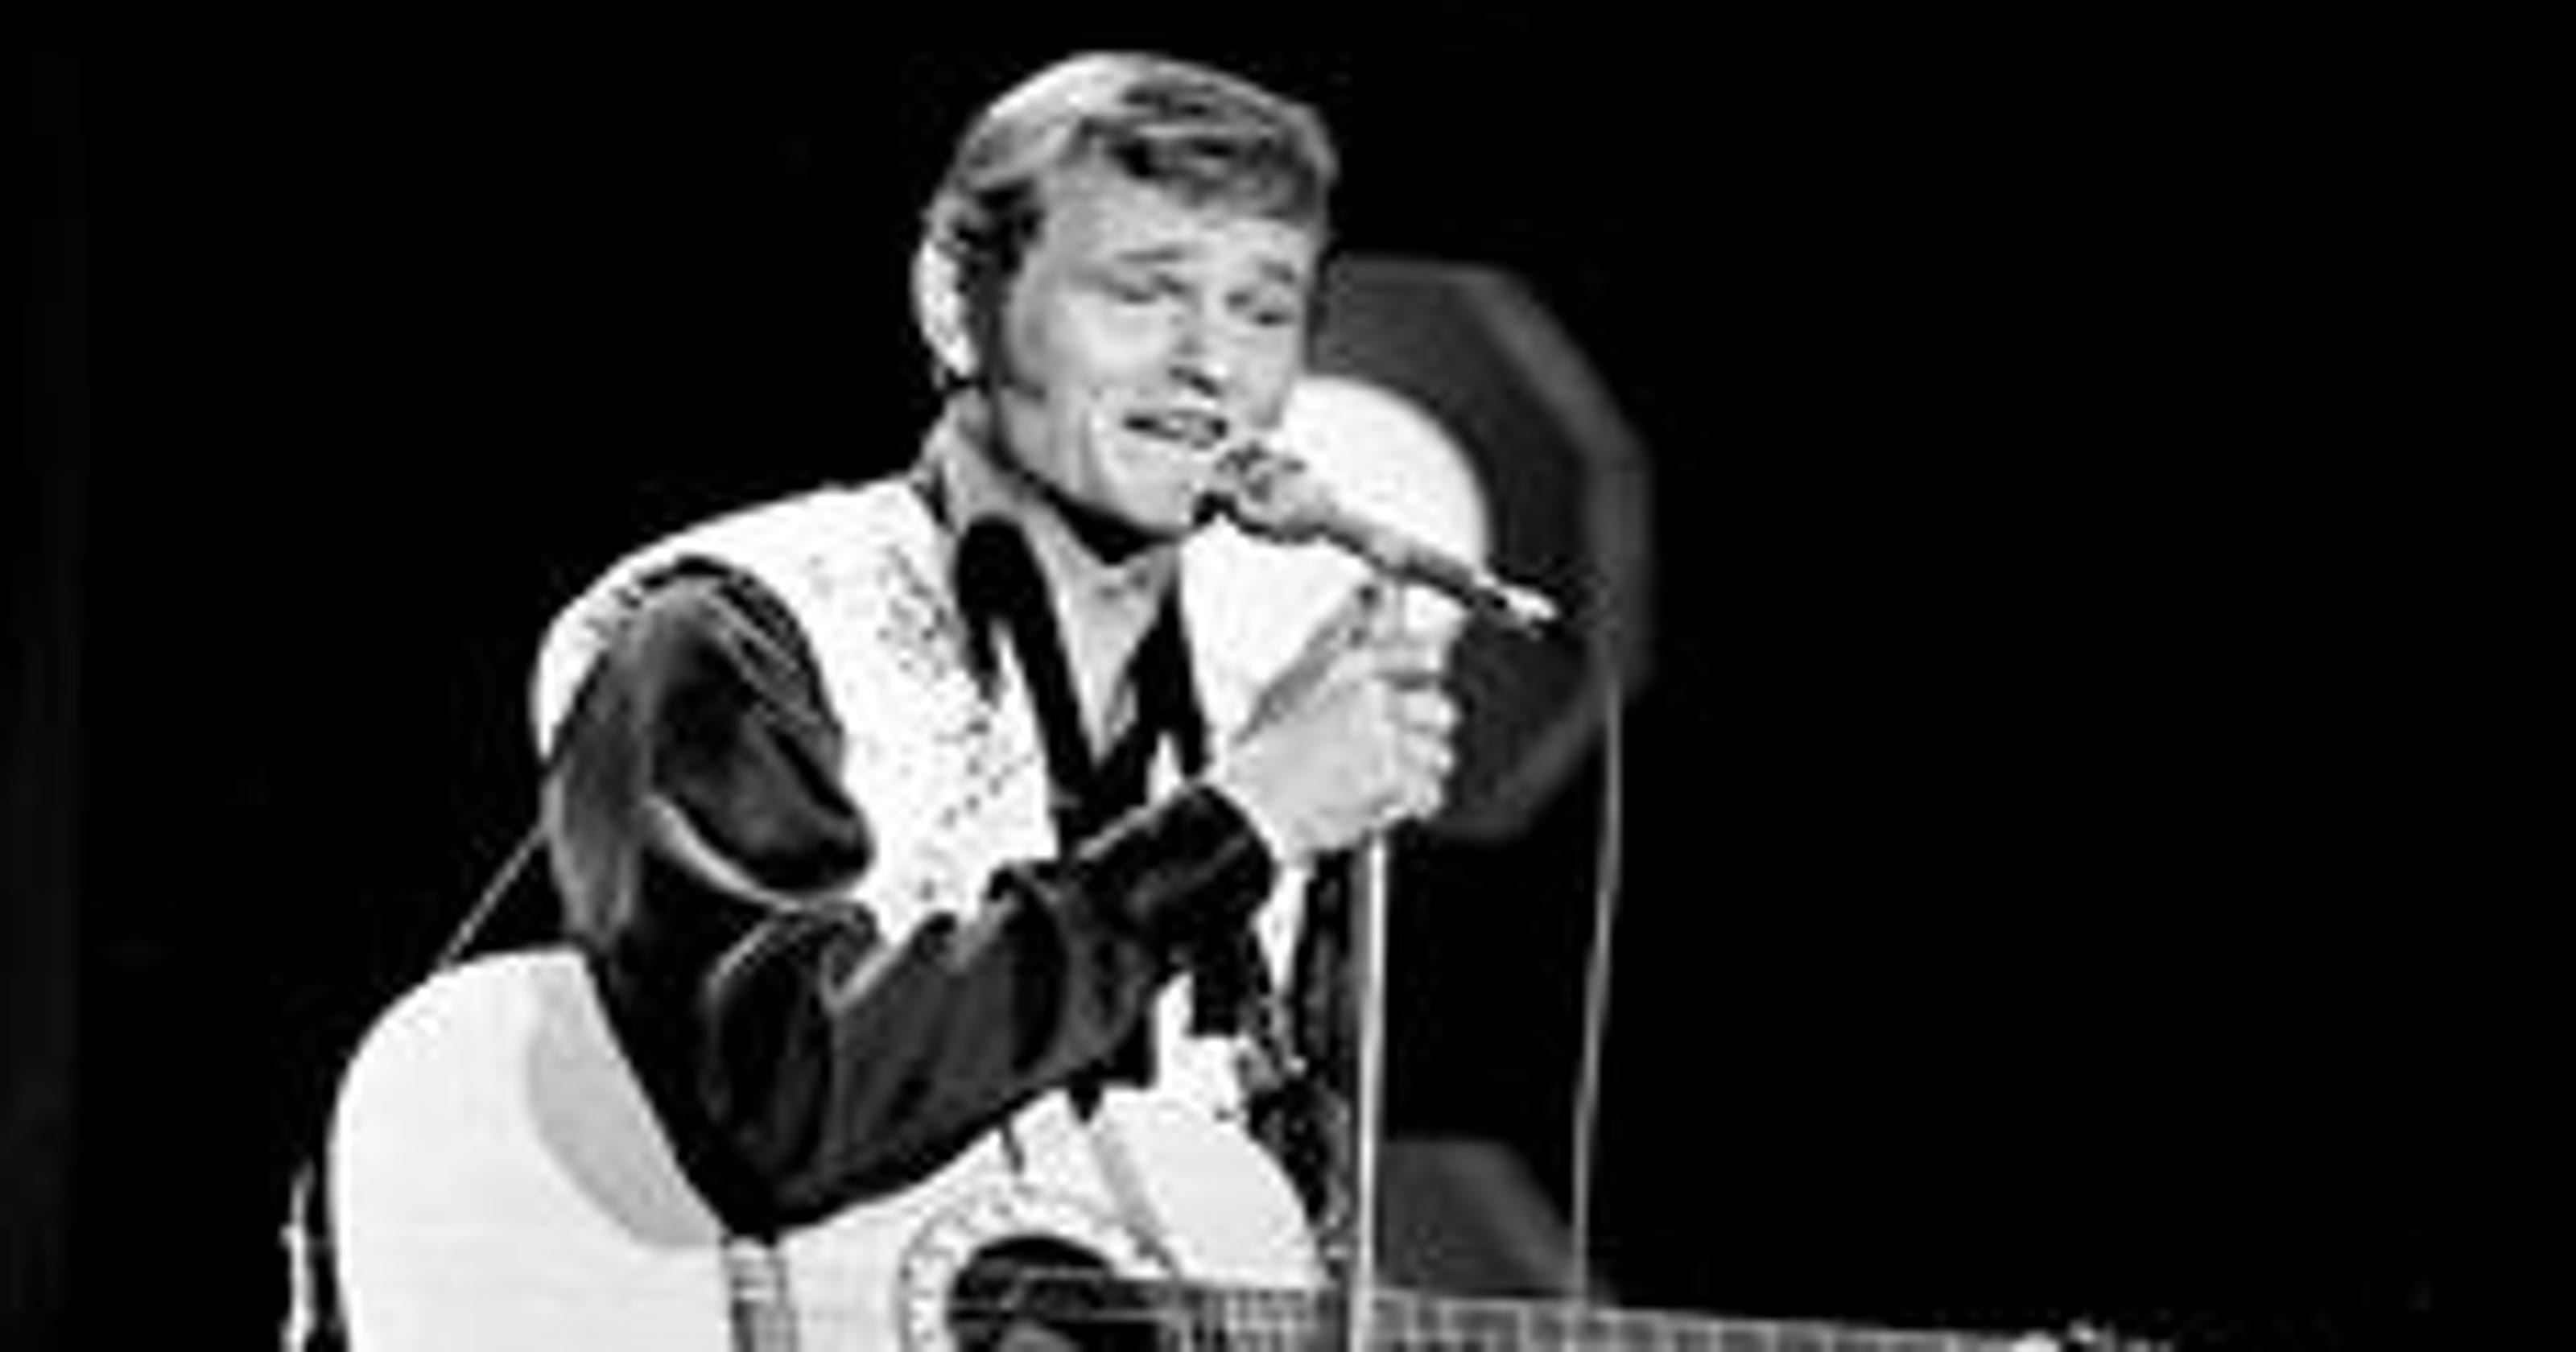 in tribute to jerry reed guitar pickers set to play in reed 39 s honor. Black Bedroom Furniture Sets. Home Design Ideas